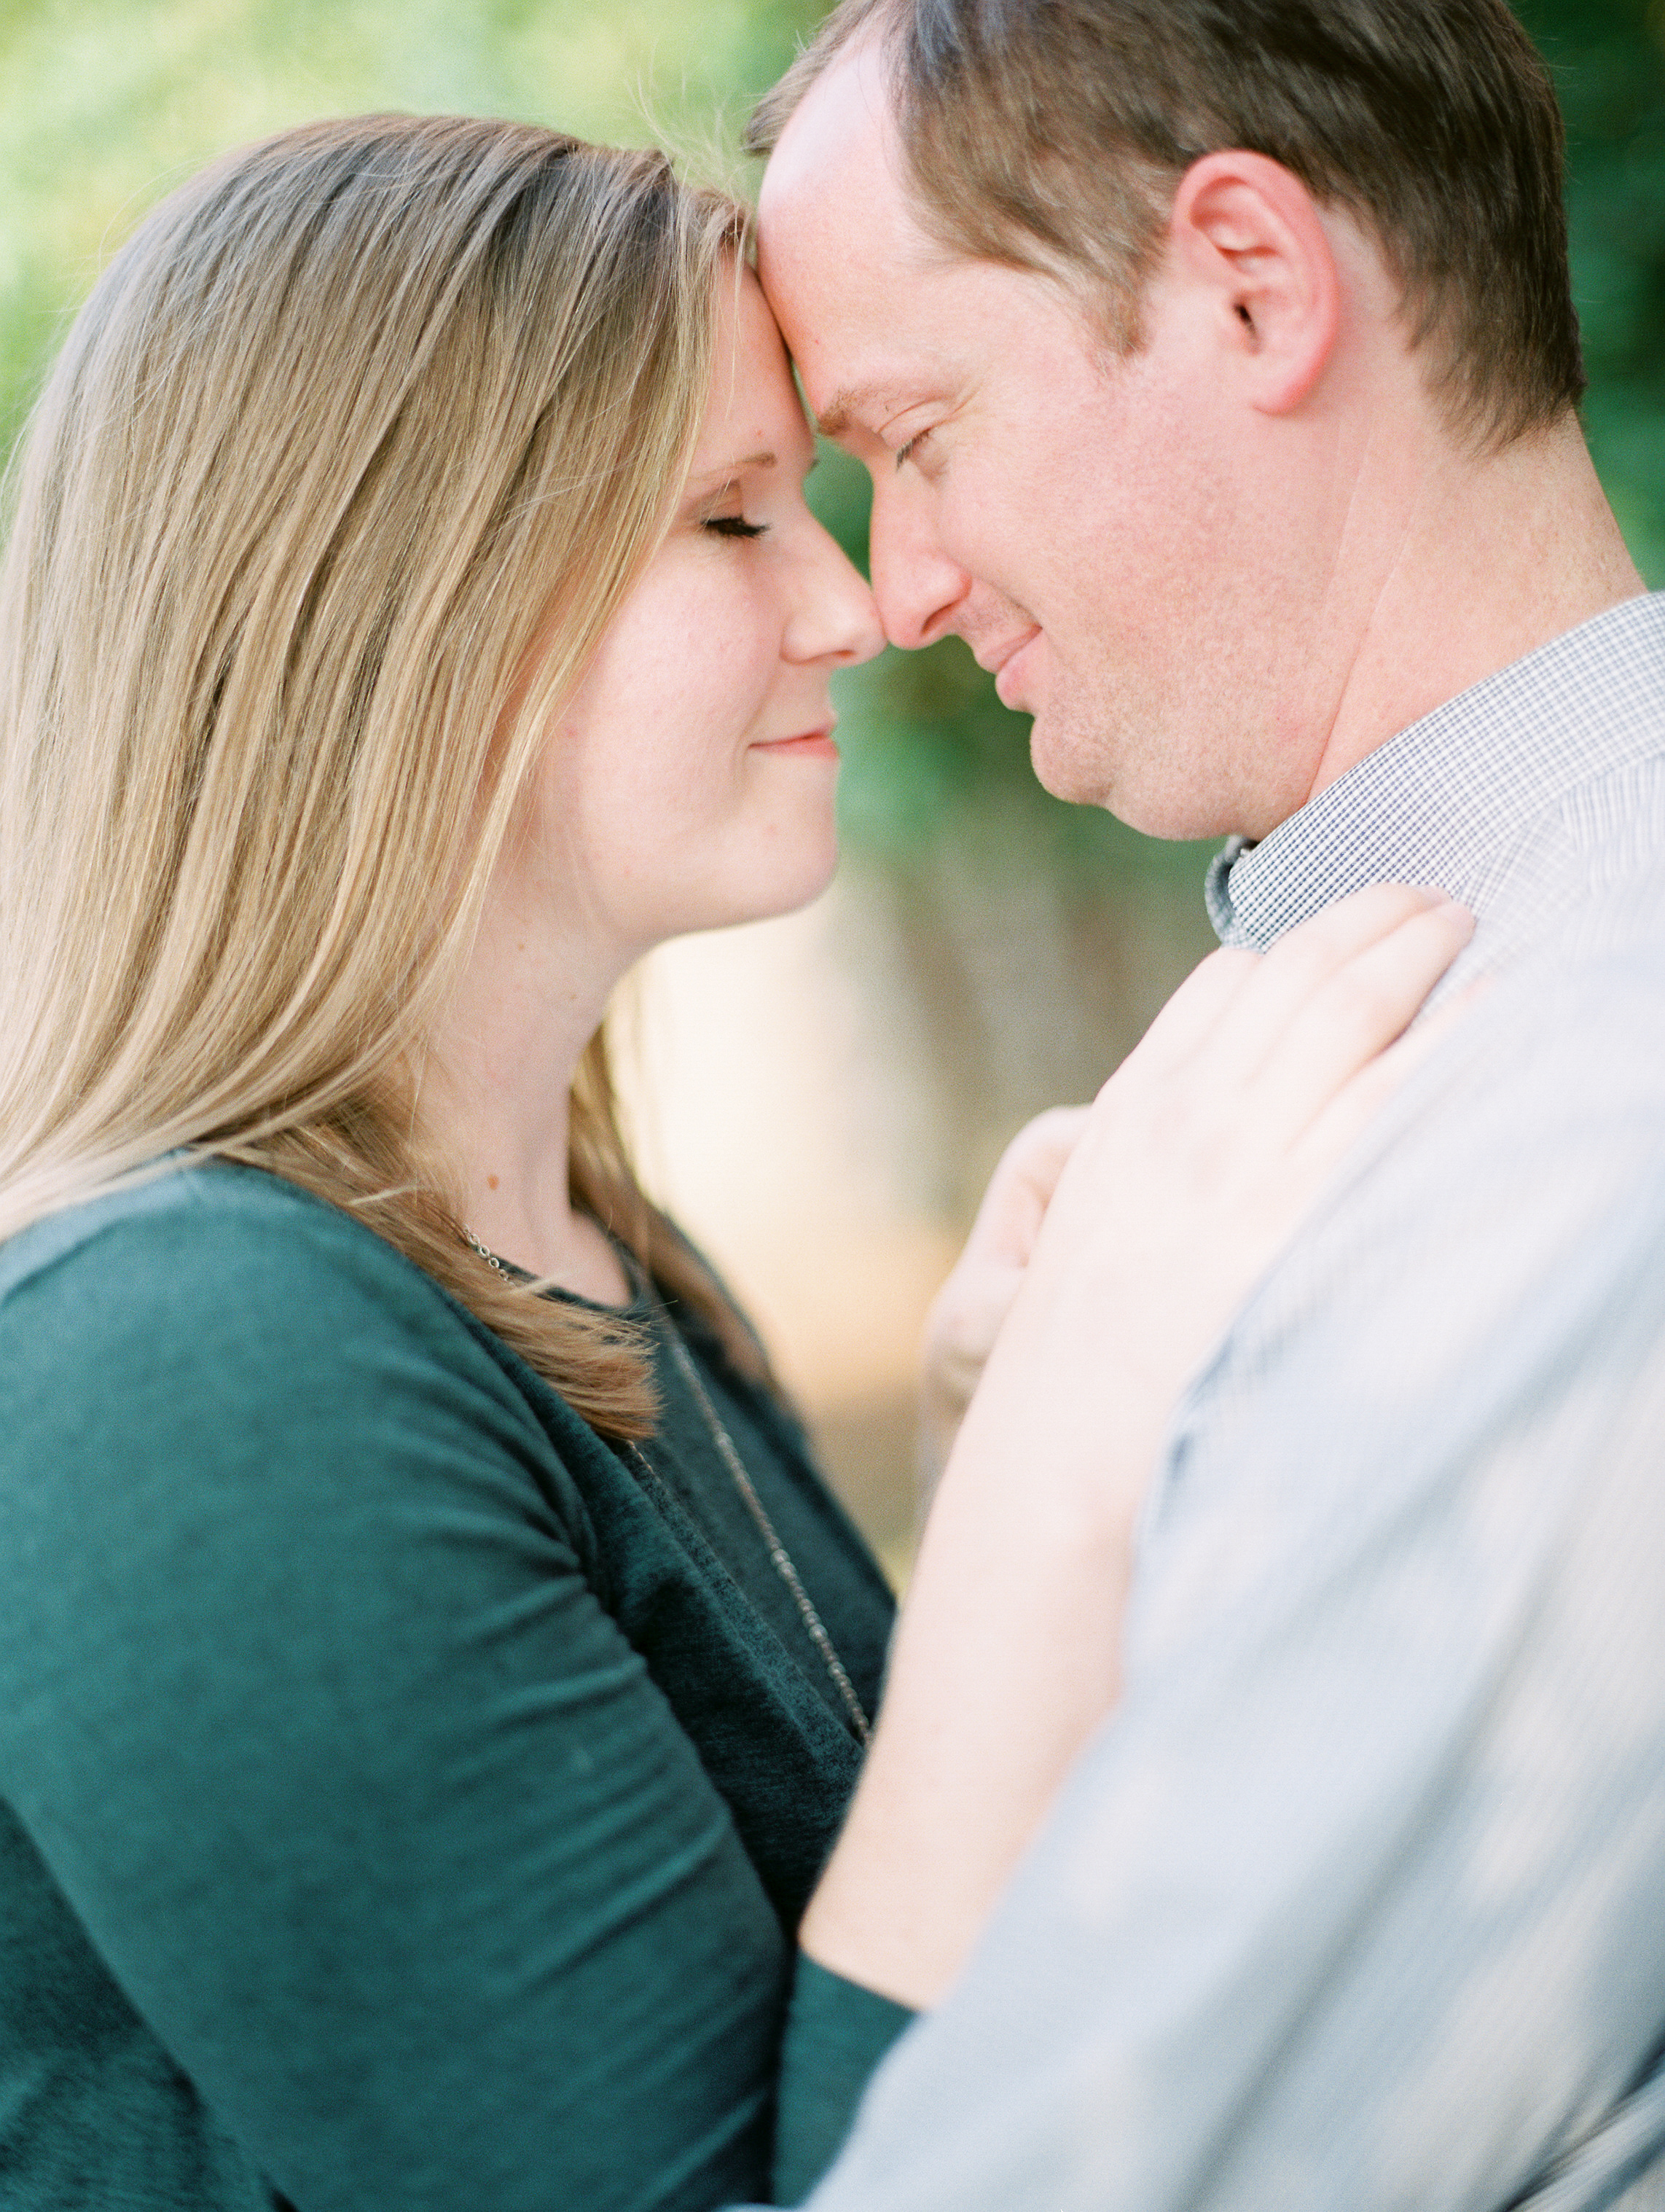 Becca_Adam_Riverwalk_Engagement_Columbus_Georgia_Fallen_Photography-34.JPG